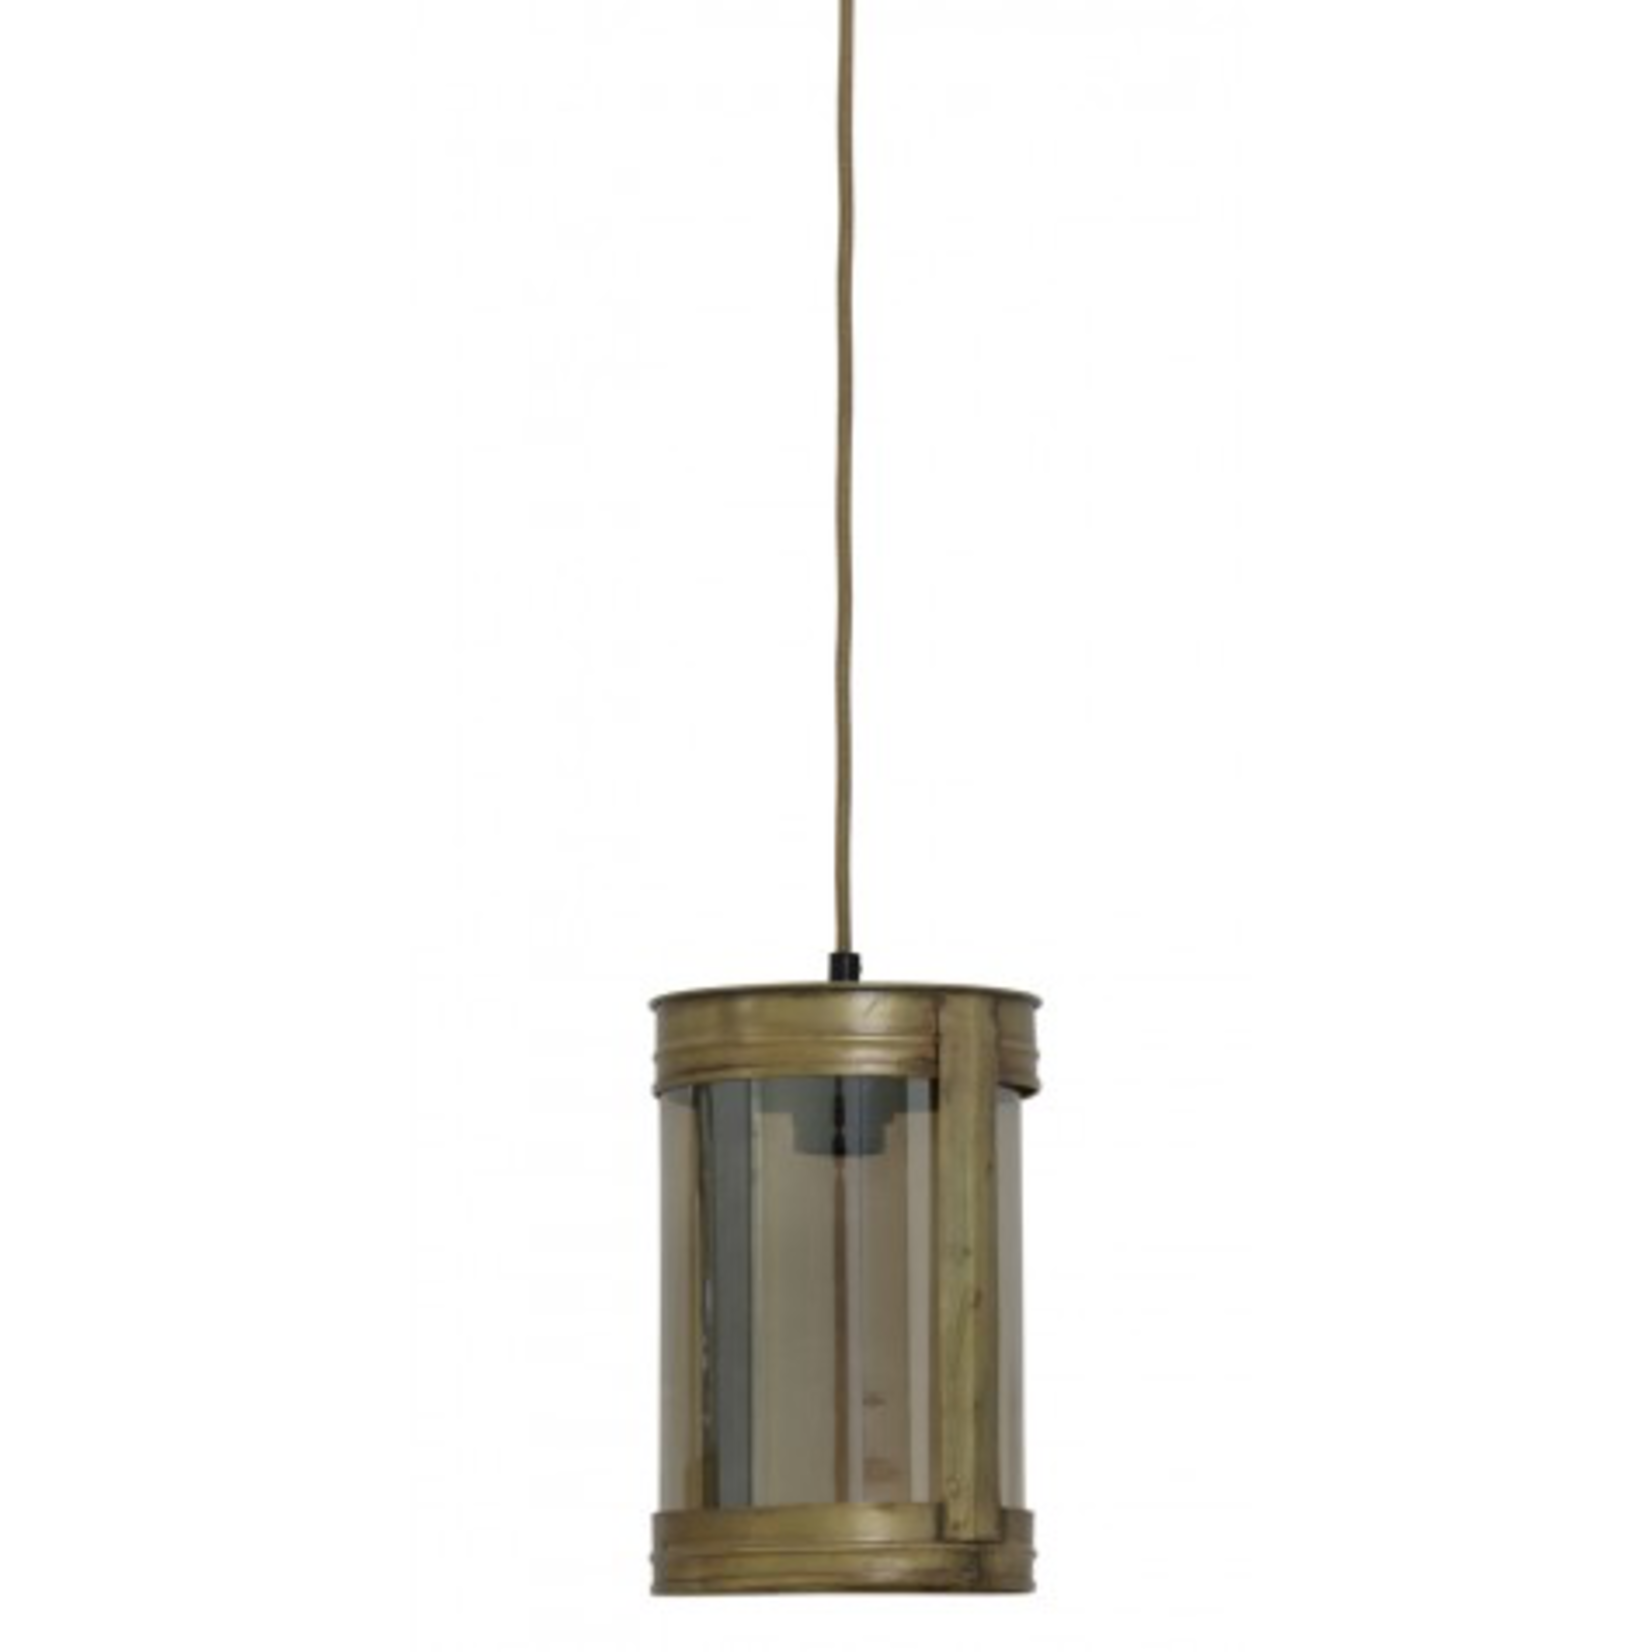 Light & Living DISCOUNTED Invy antique bronze & glass smoke hanging lamp 17x25cm all have minor blemishes to glass or brass finish